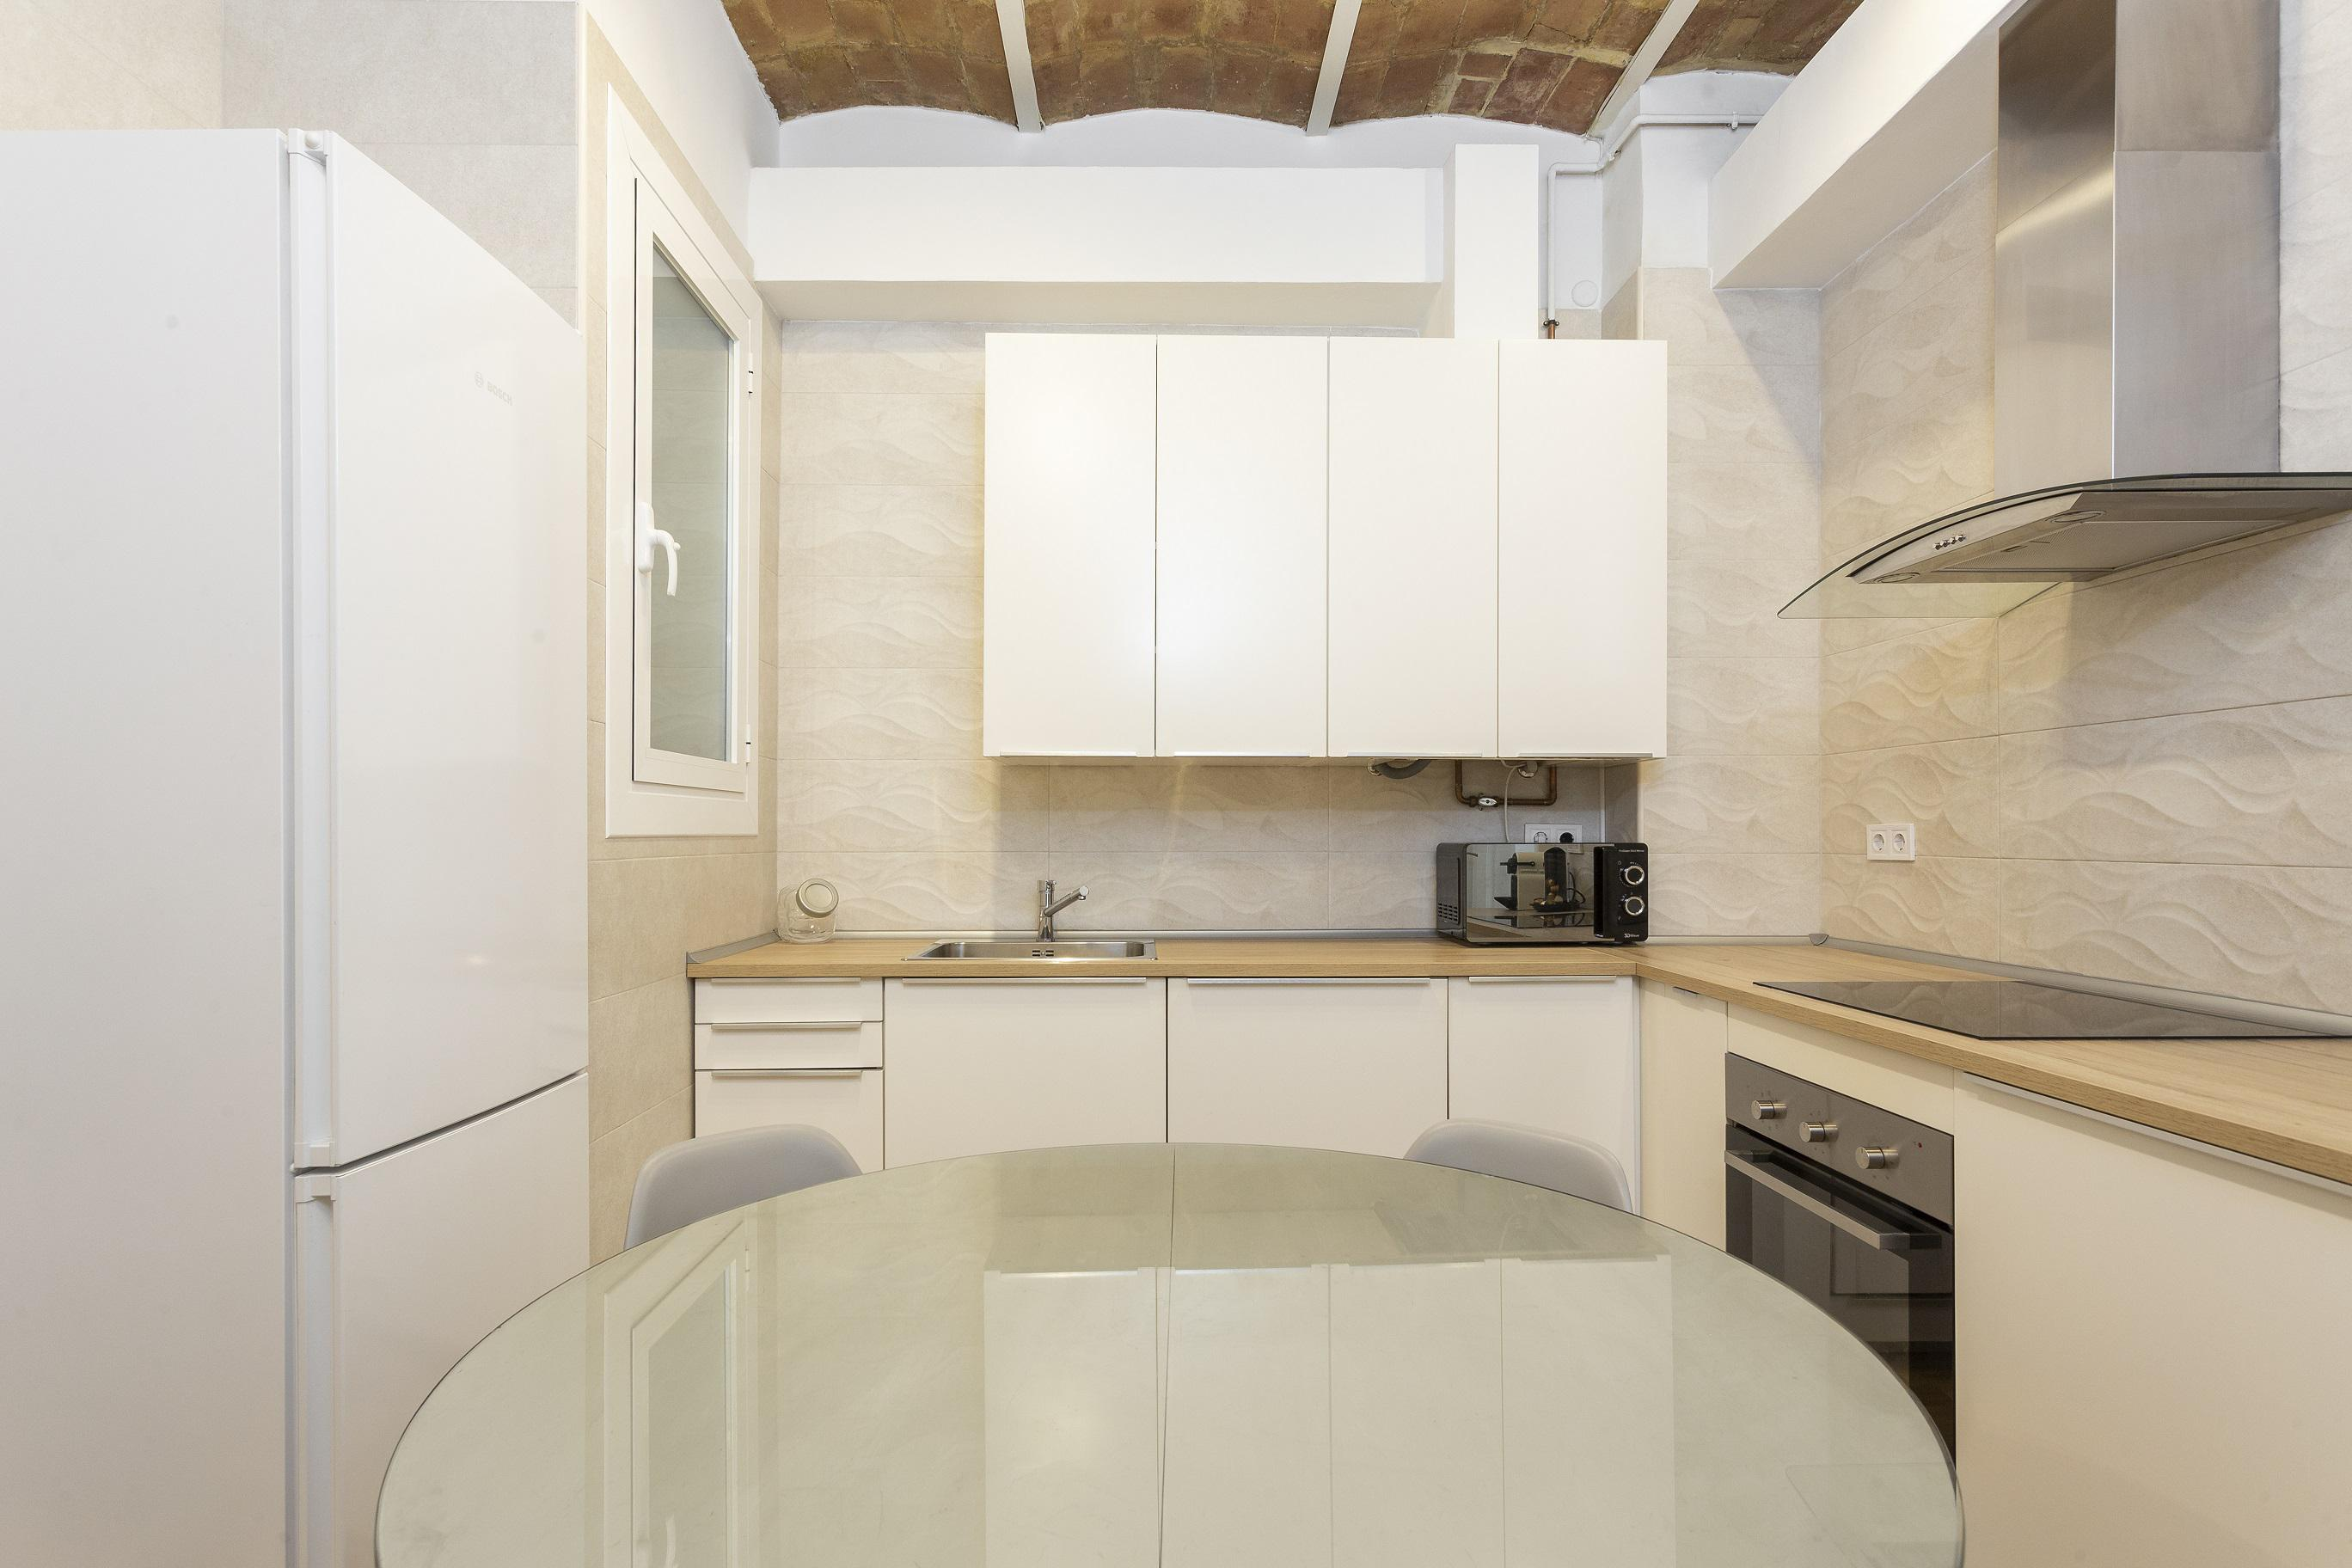 236190 Apartment for sale in Eixample, Old Left Eixample 2